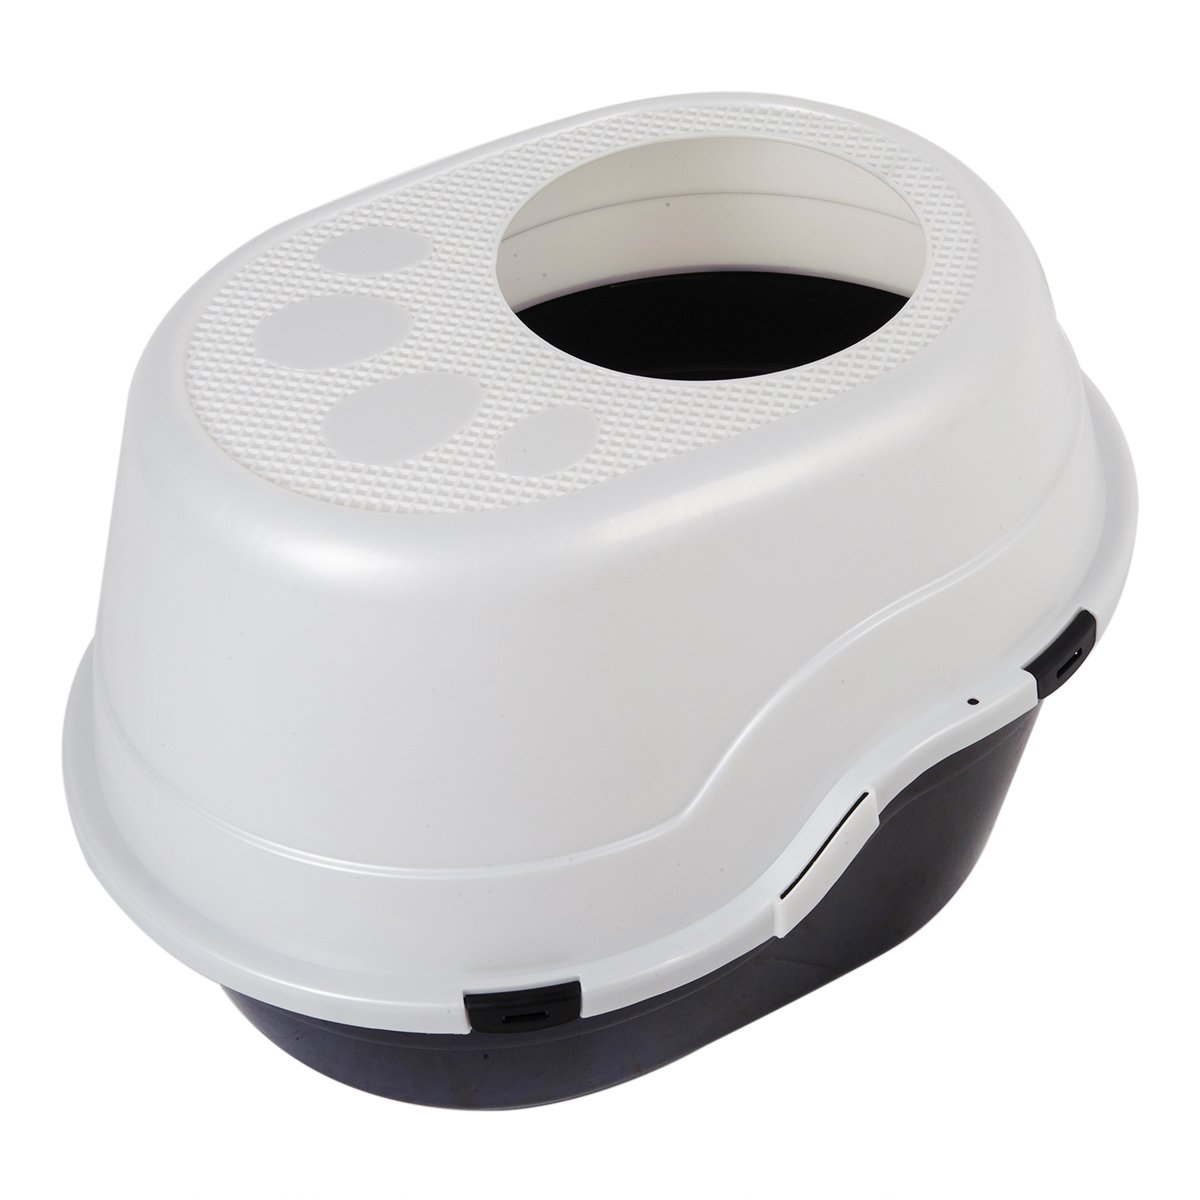 Best Rated In Cat Litter Boxes Amp Helpful Customer Reviews